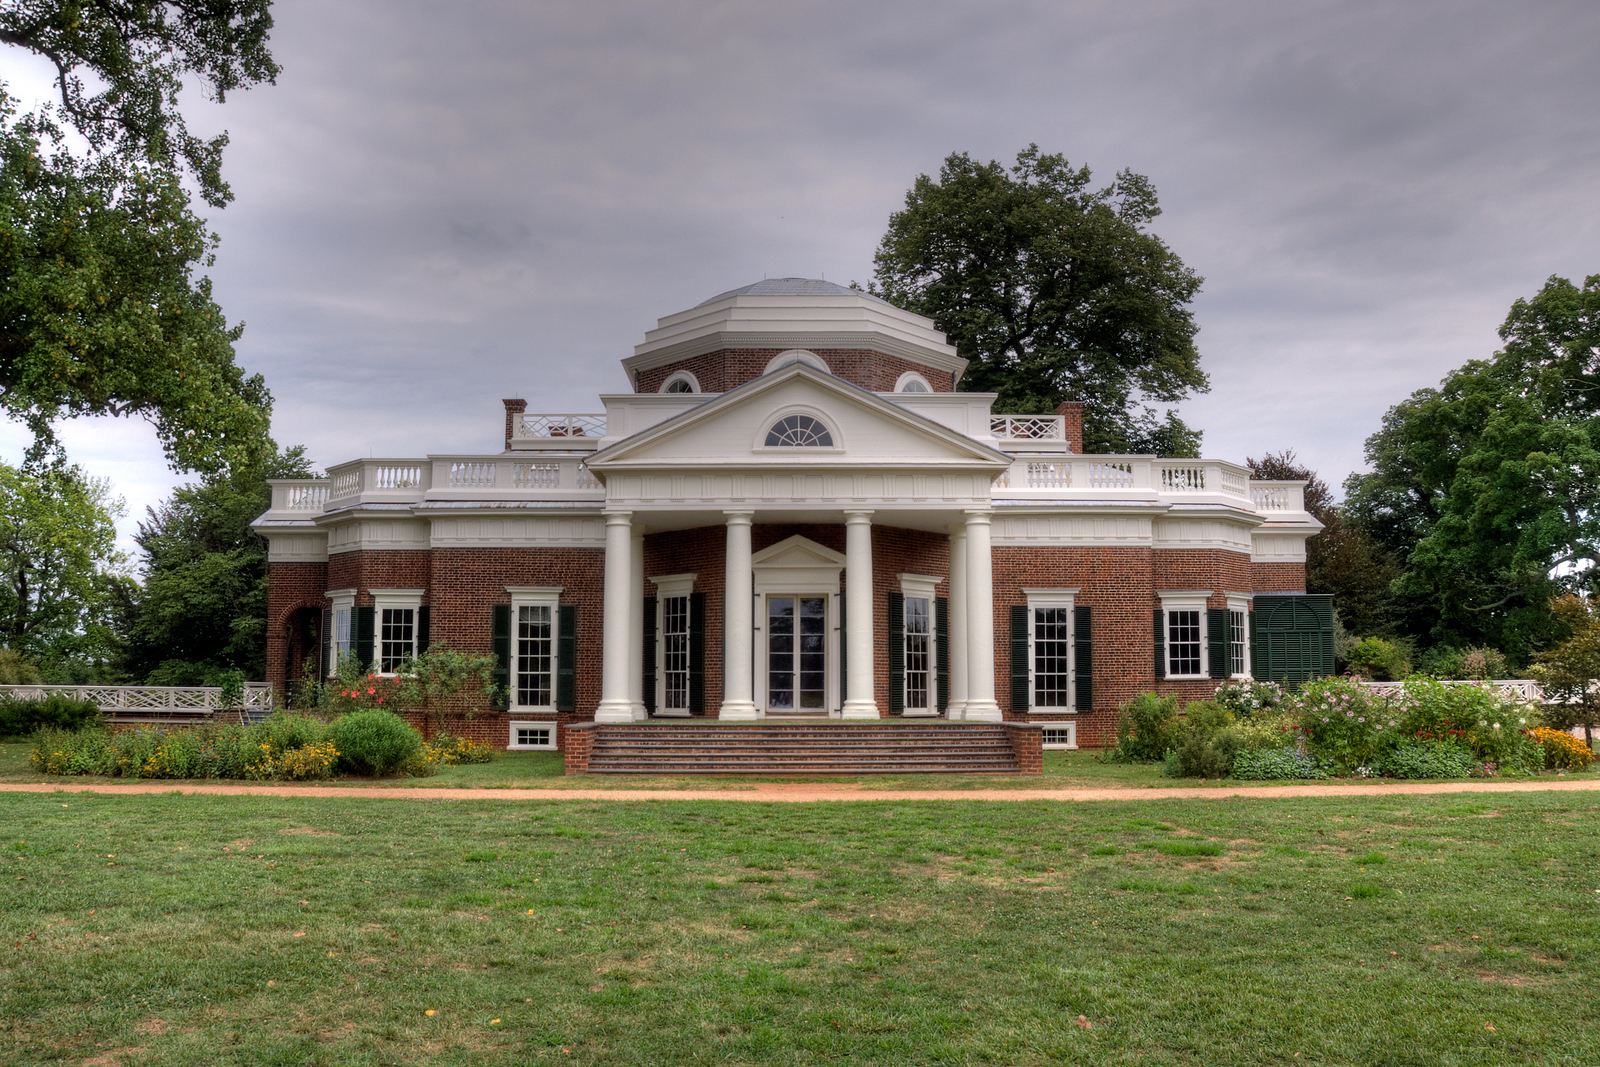 Monticello and the University of Virginia in Charlottesville UNESCO World Heritage Site